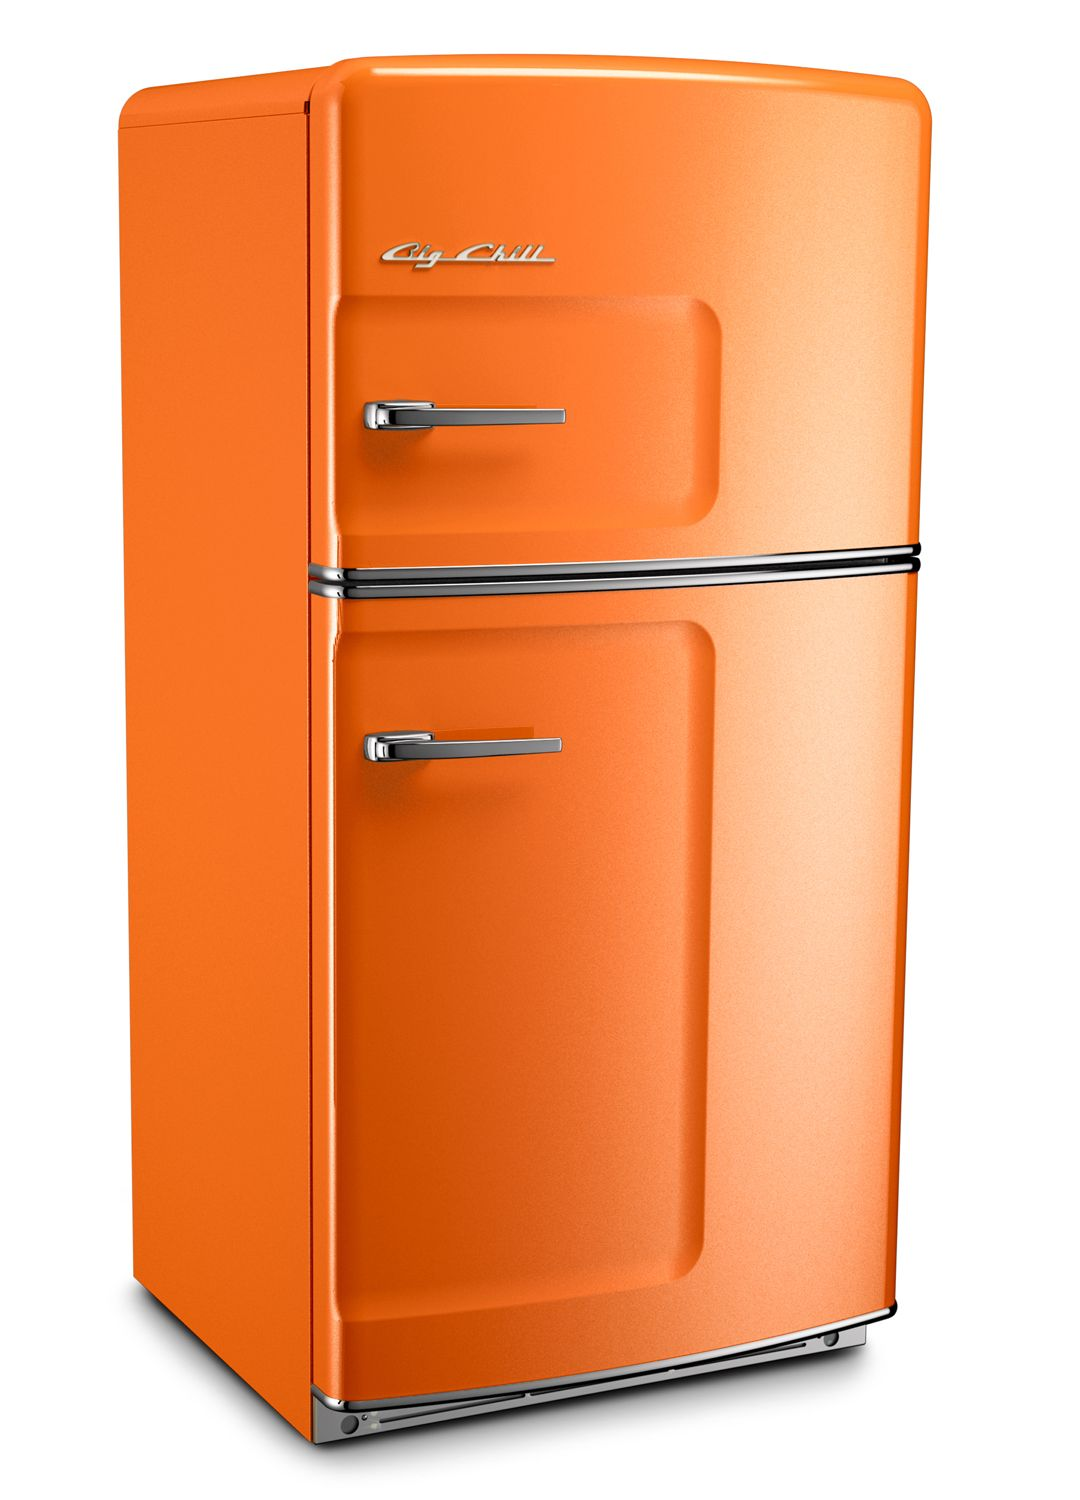 orange retro refrigerator by big chill orange pinterest. Black Bedroom Furniture Sets. Home Design Ideas